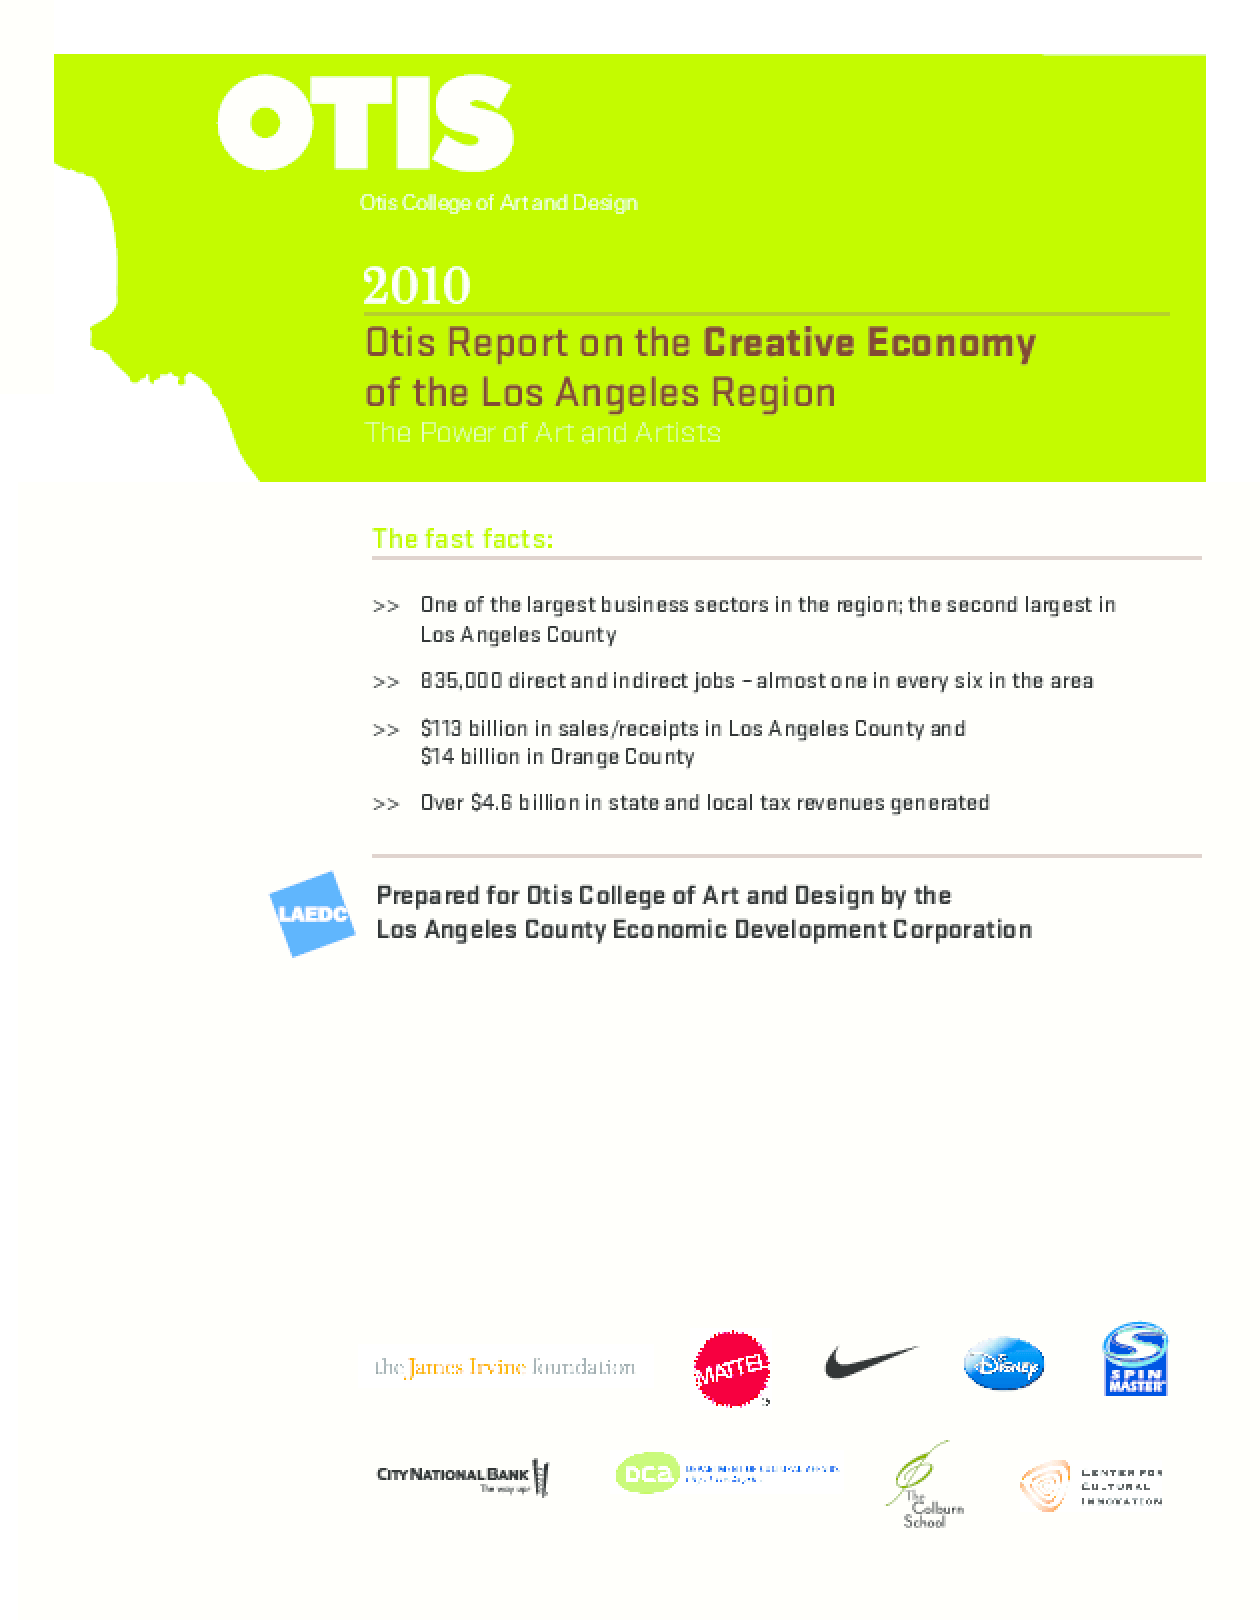 2010 Otis Report on the Creative Economy of the Los Angeles Region